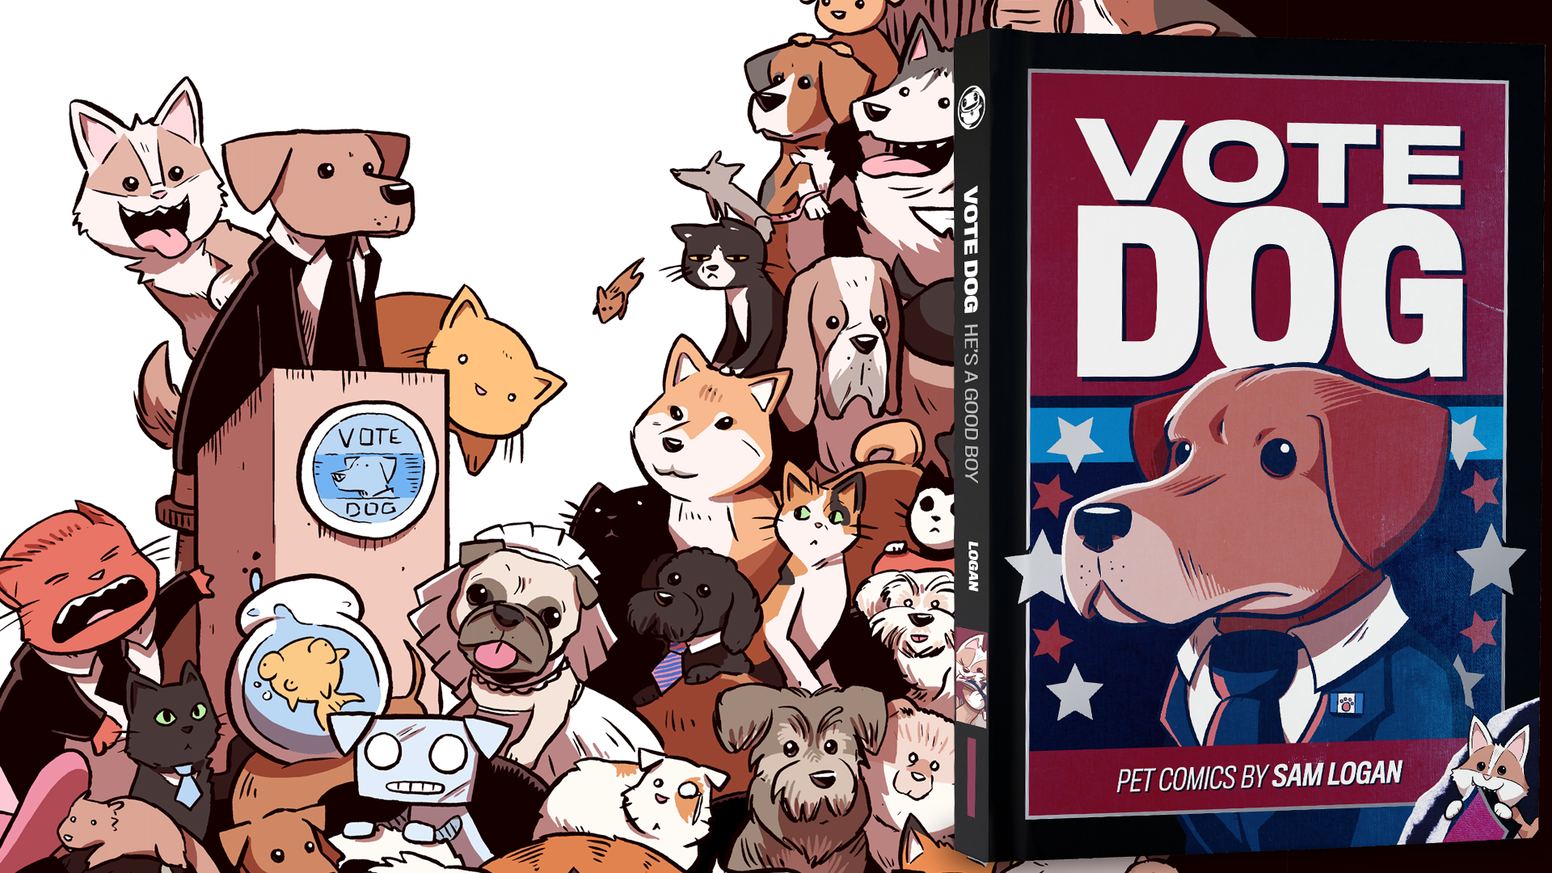 President Dog, Baker the Corgi, and an entire cast of critters star in this collection of pet-themed comics by Sam Logan.